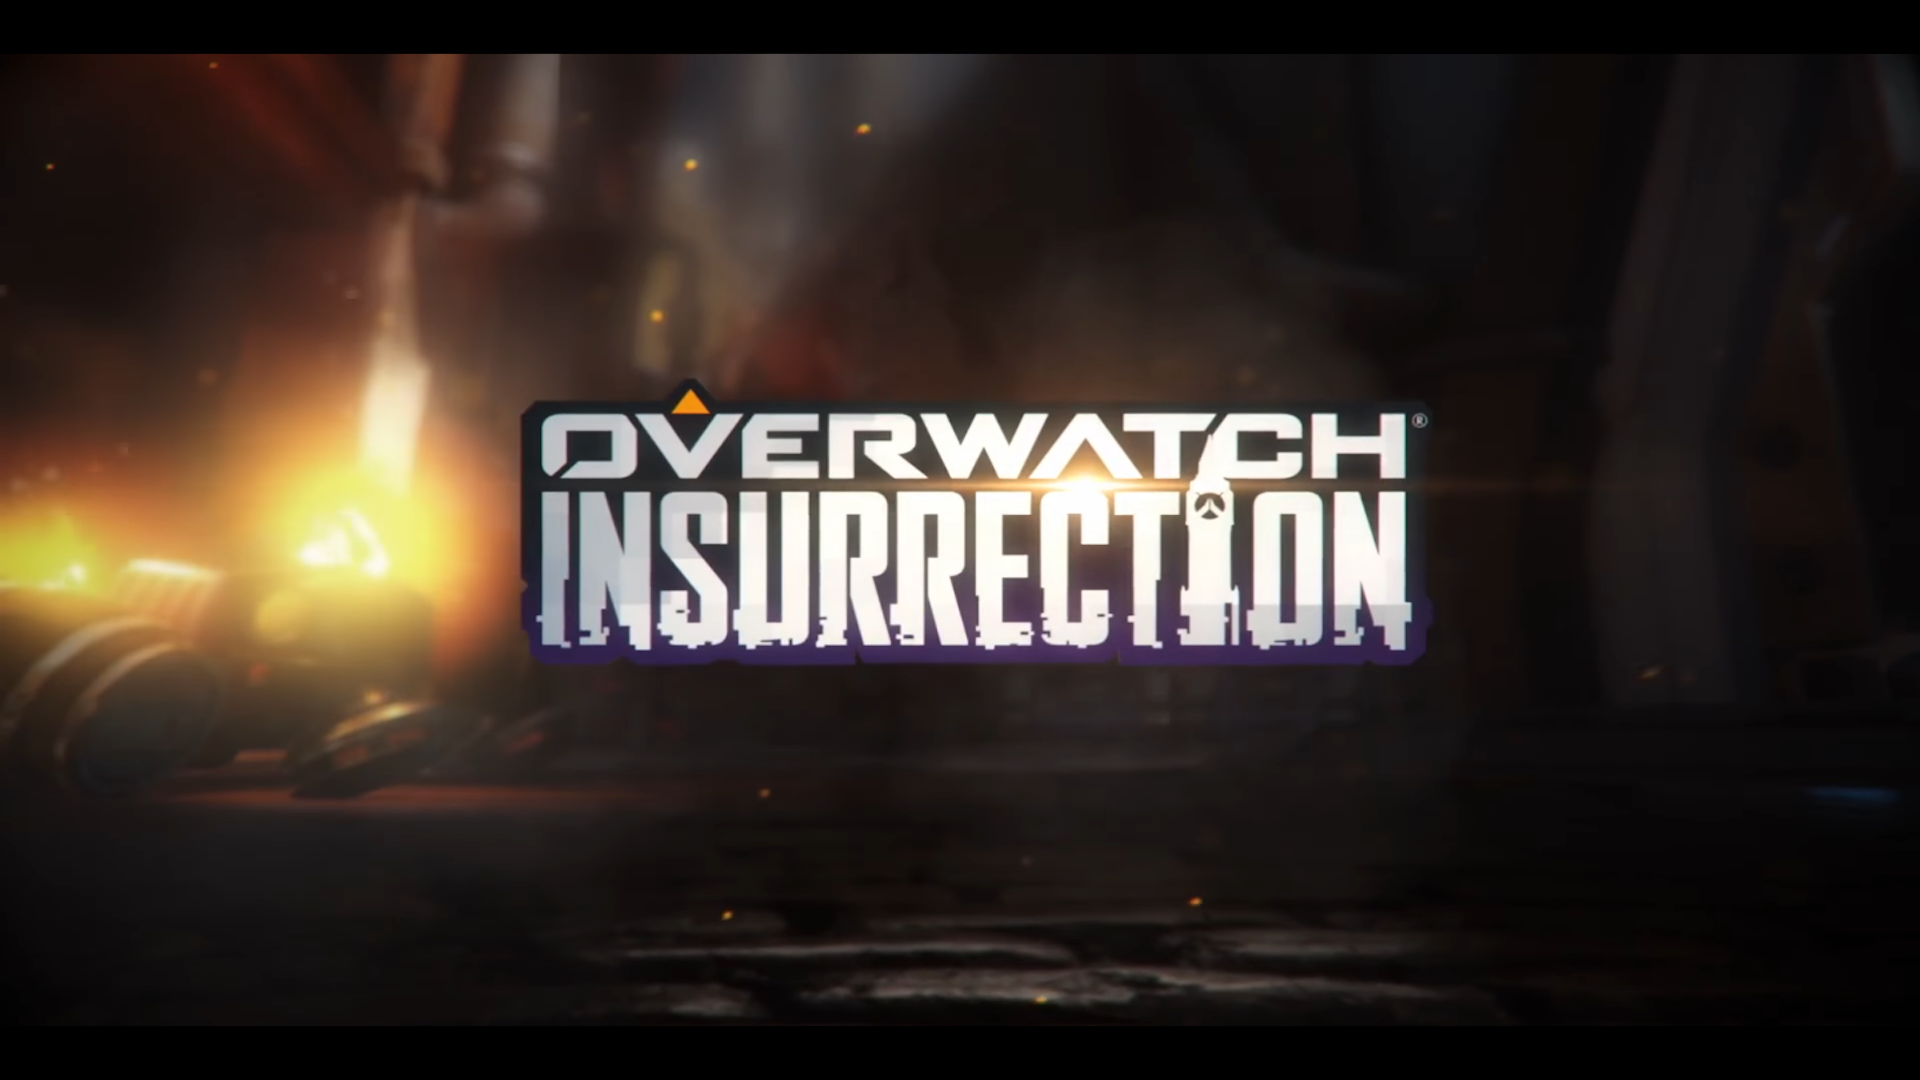 here-are-the-details-for-the-overwatch-insurrection-event